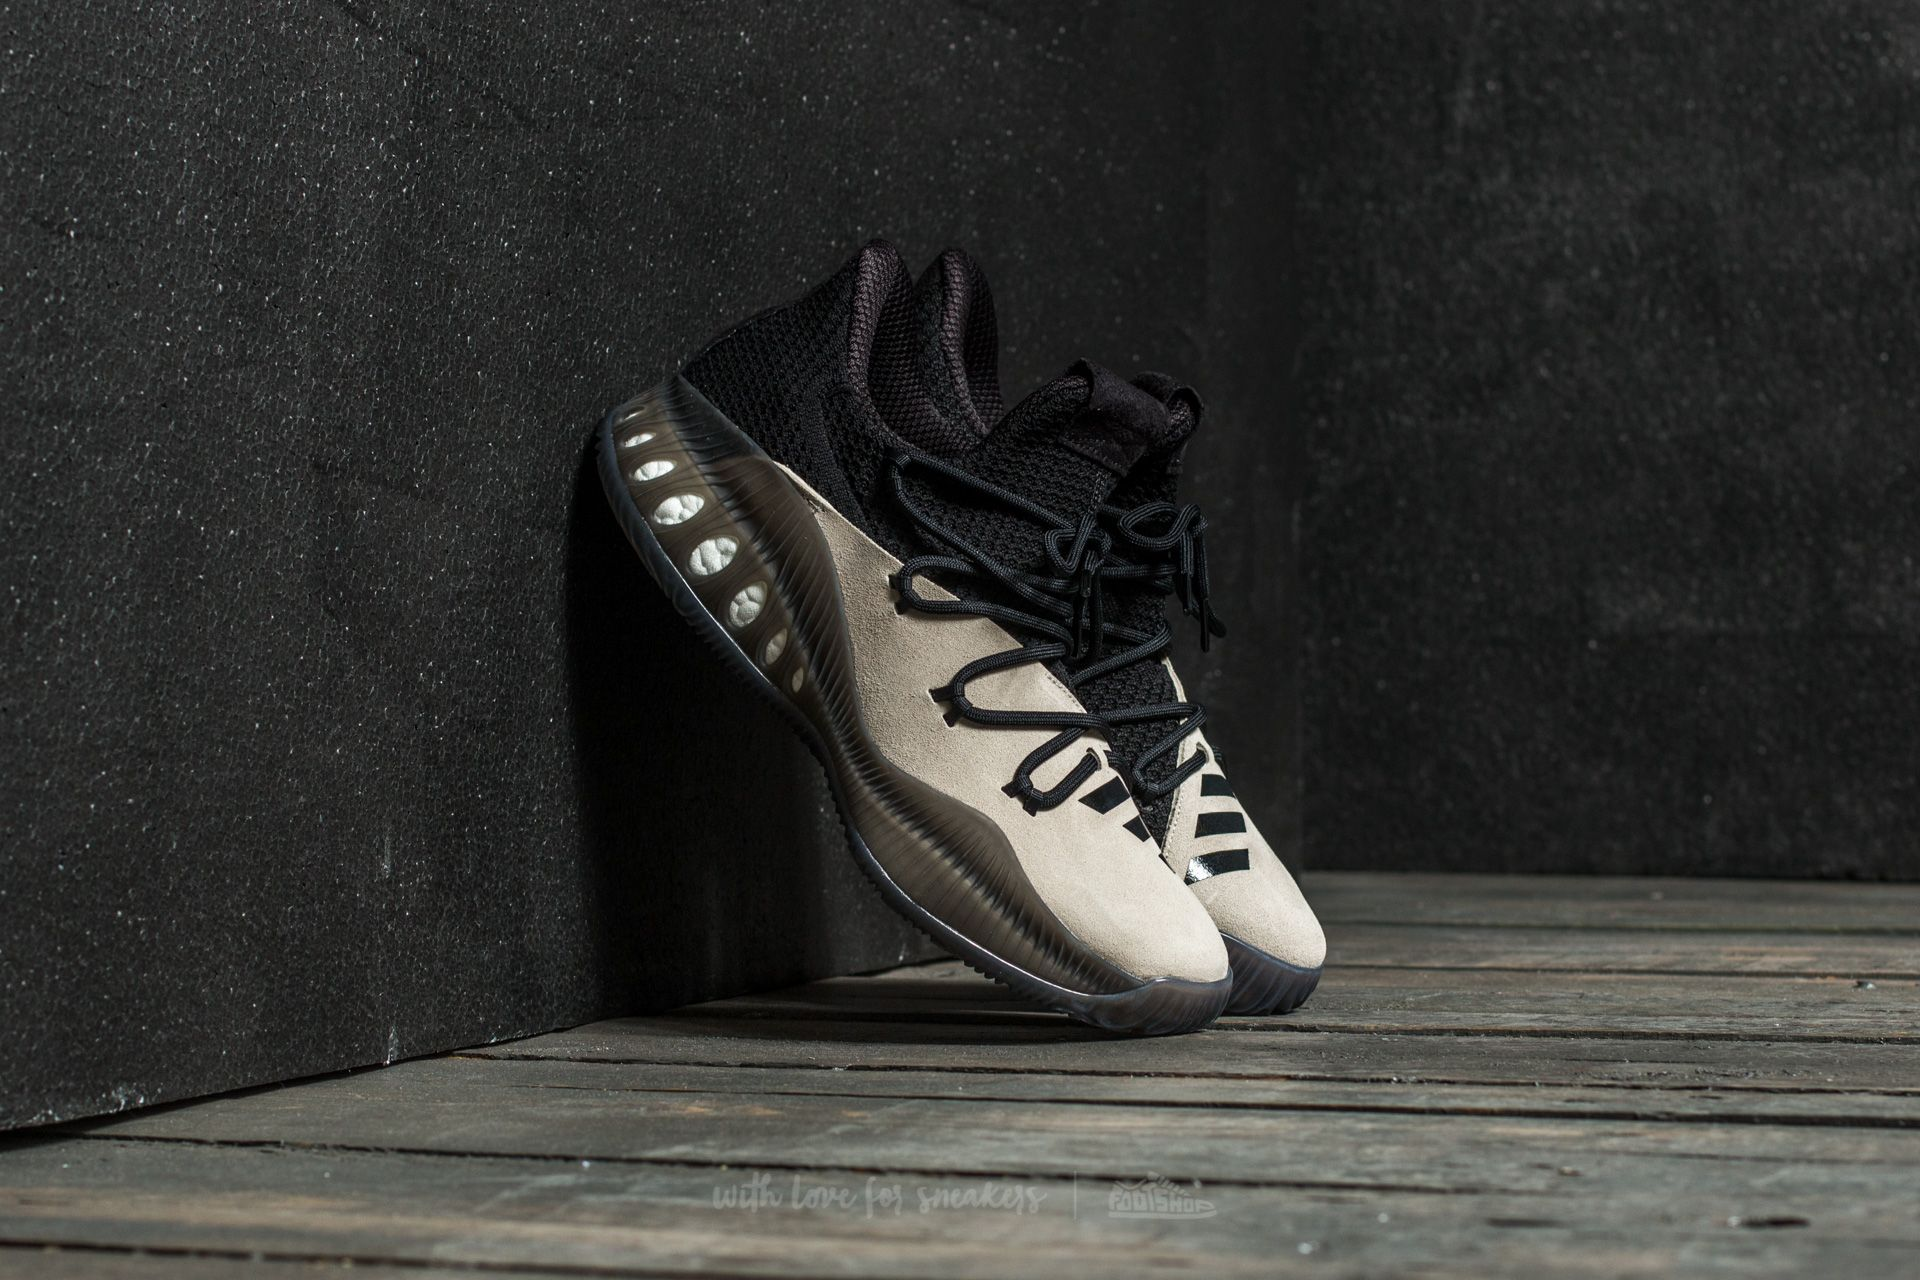 adidas Ado Crazy Explosive Clay Brown/ White Black/ Black White - 15620